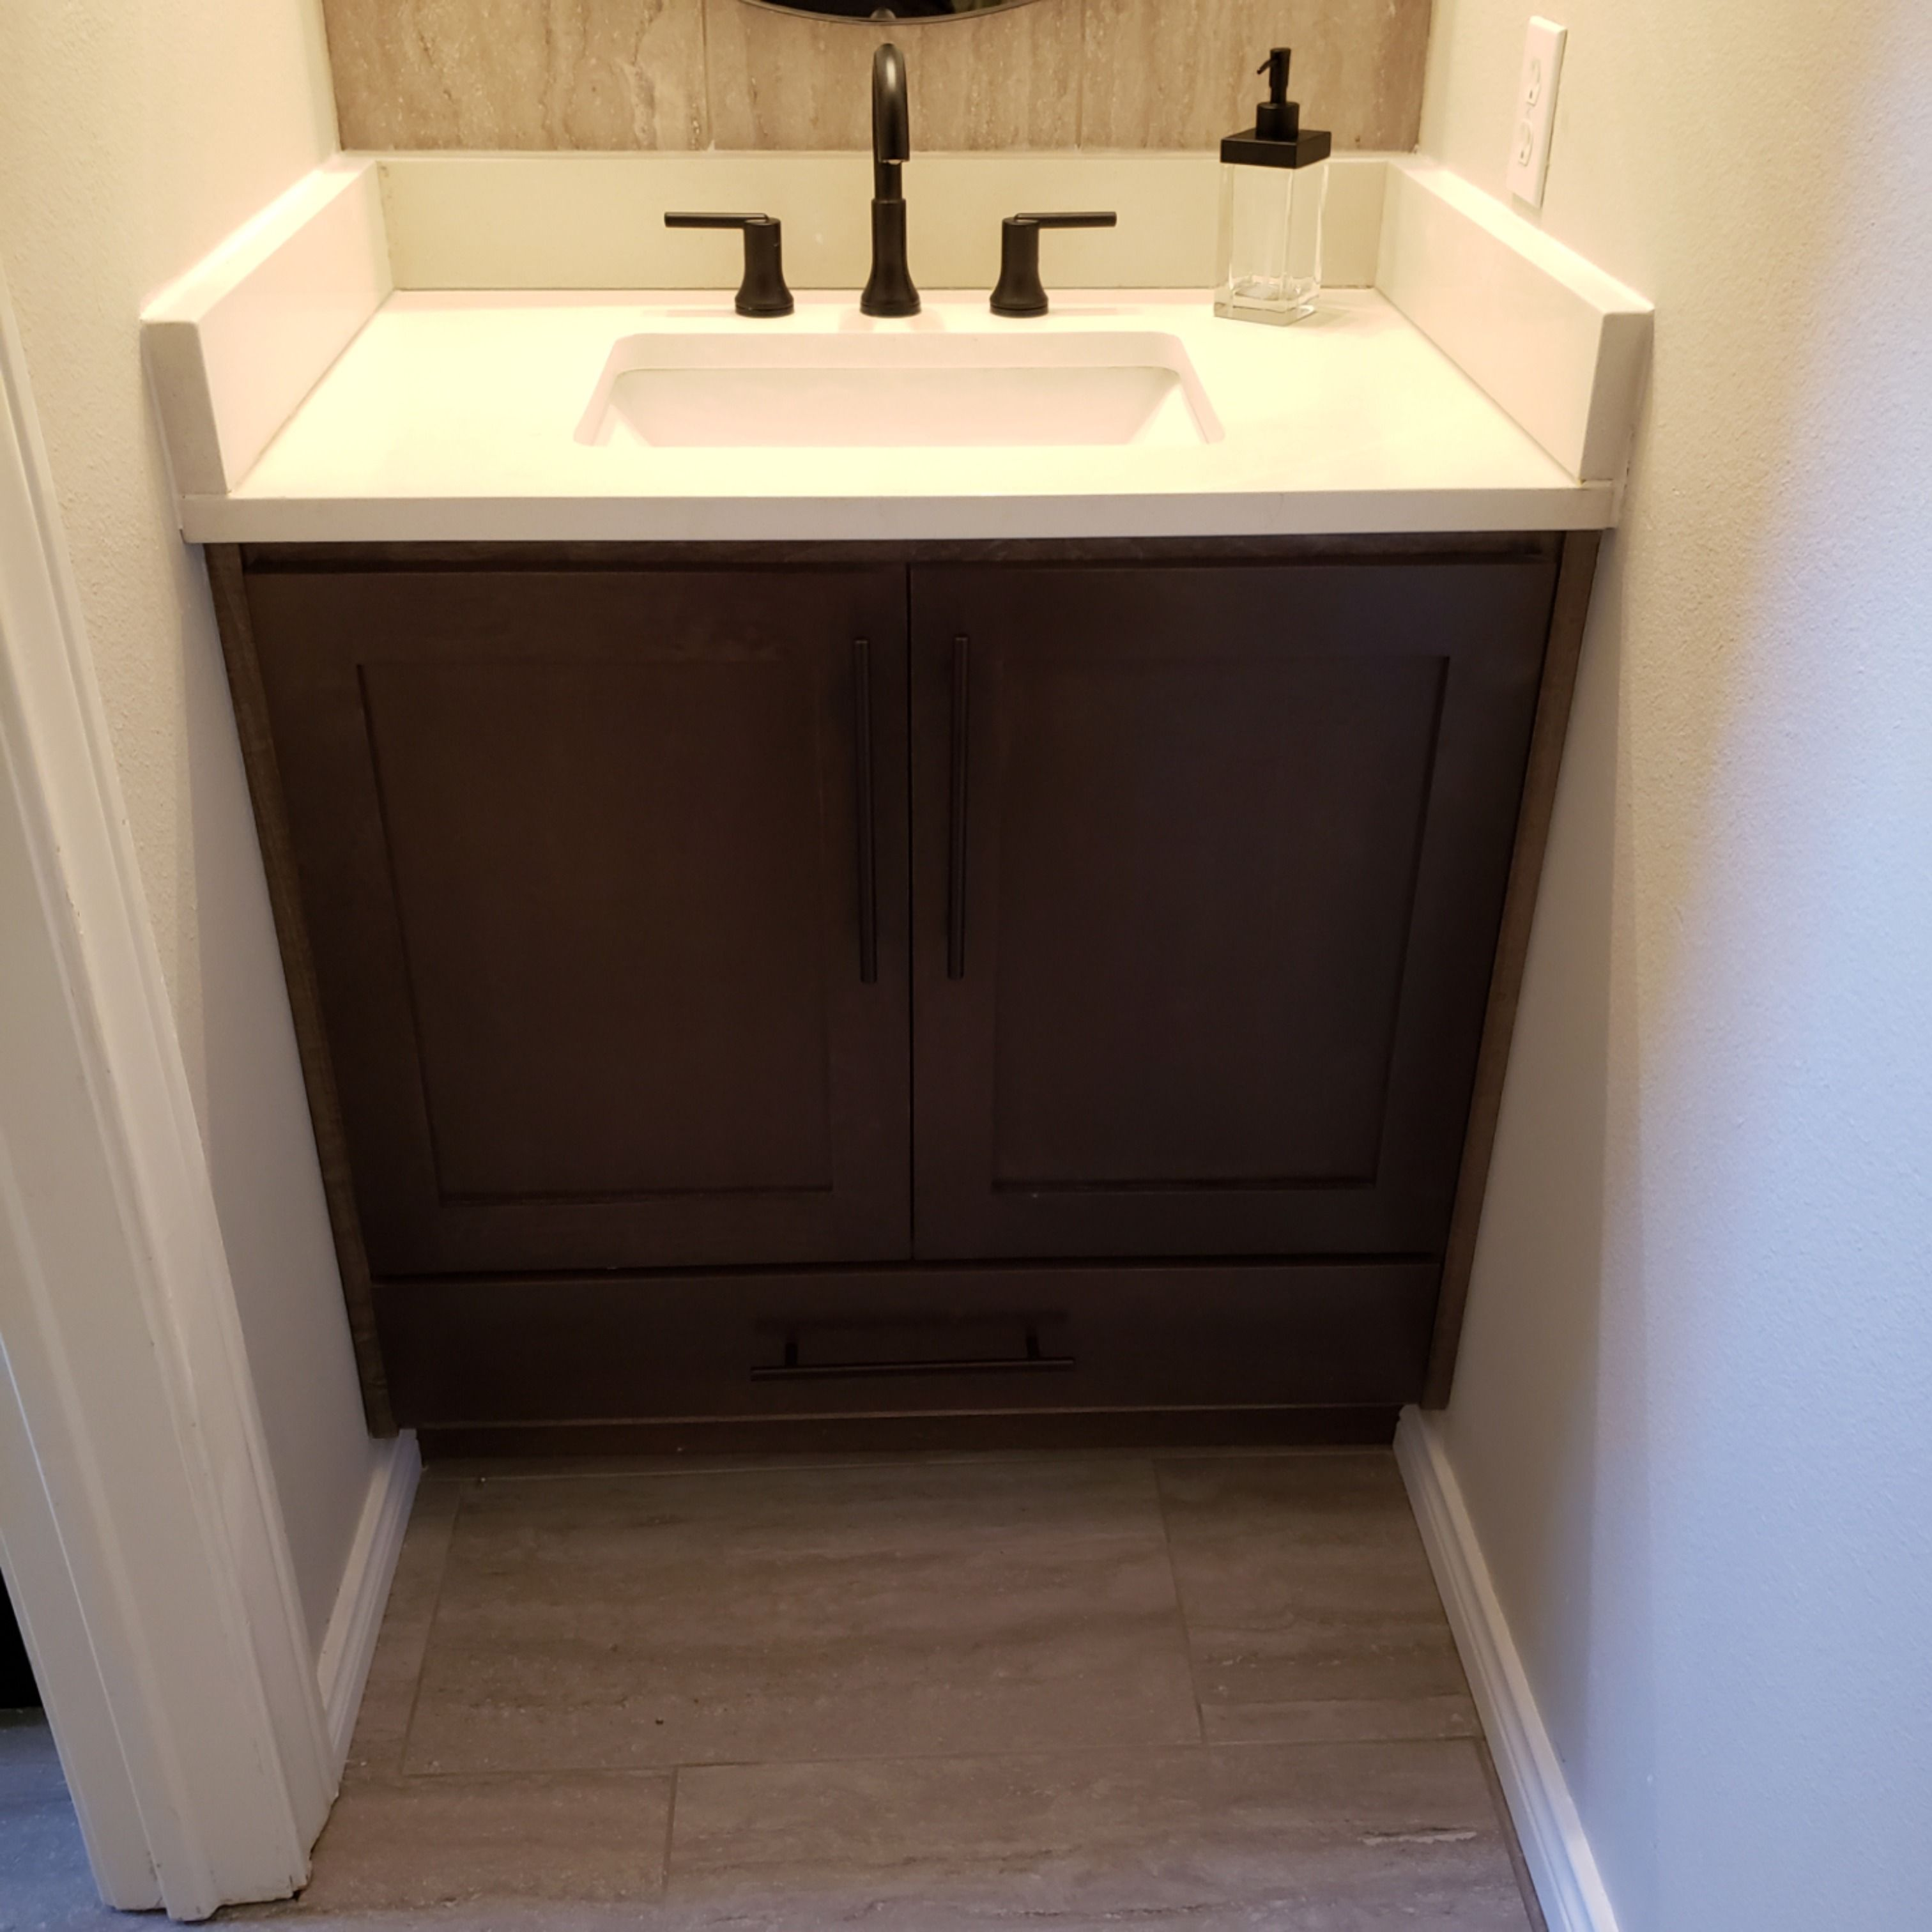 Pin by Texas Remodeling Pros on txremodelpros.com ...